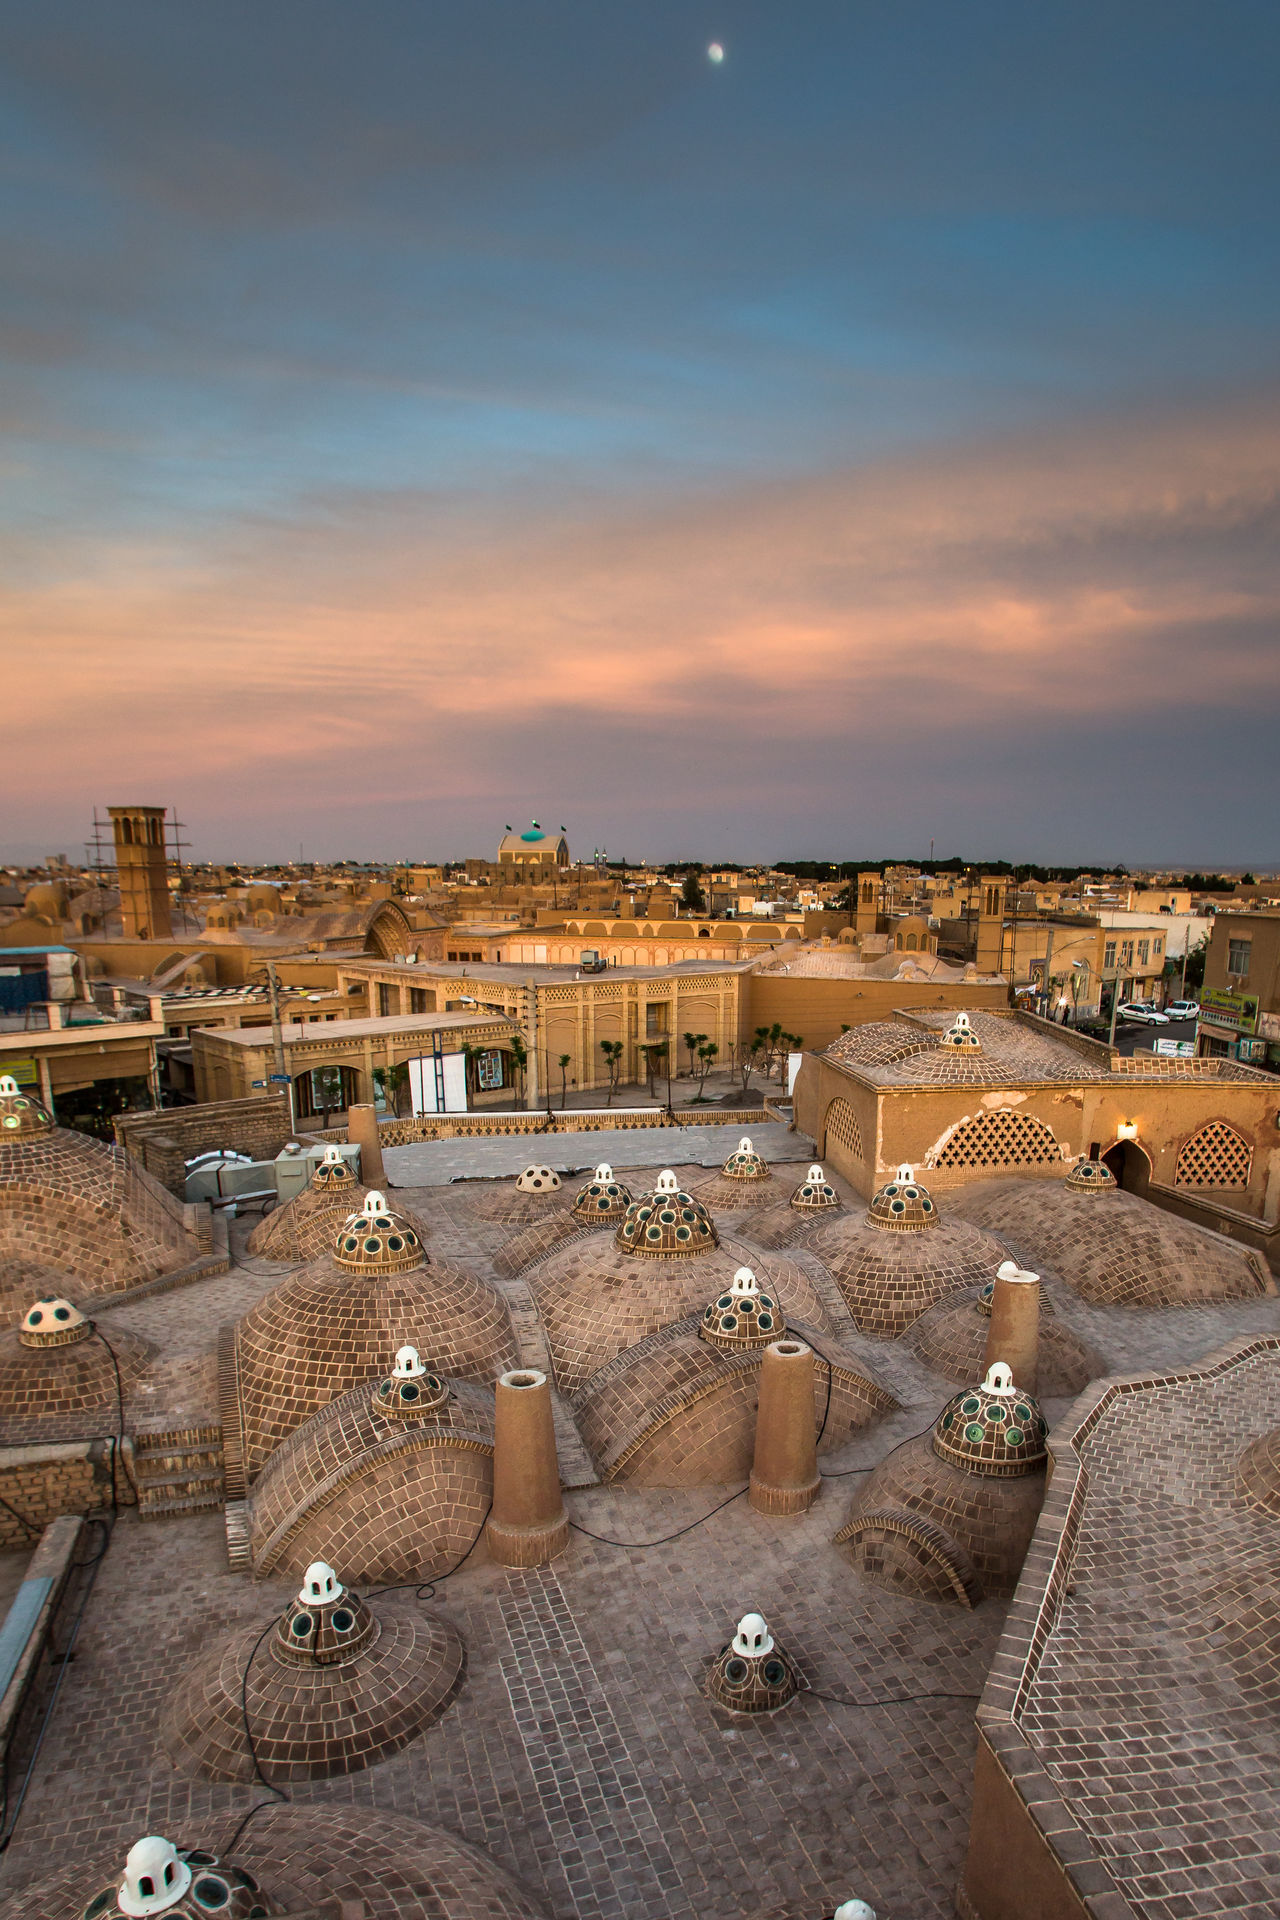 Cityscape Cityscapes Dusk Elevated View Iran Landscape Middle East Persia Rooftops Sky Sunset TOWNSCAPE Travel Destinations